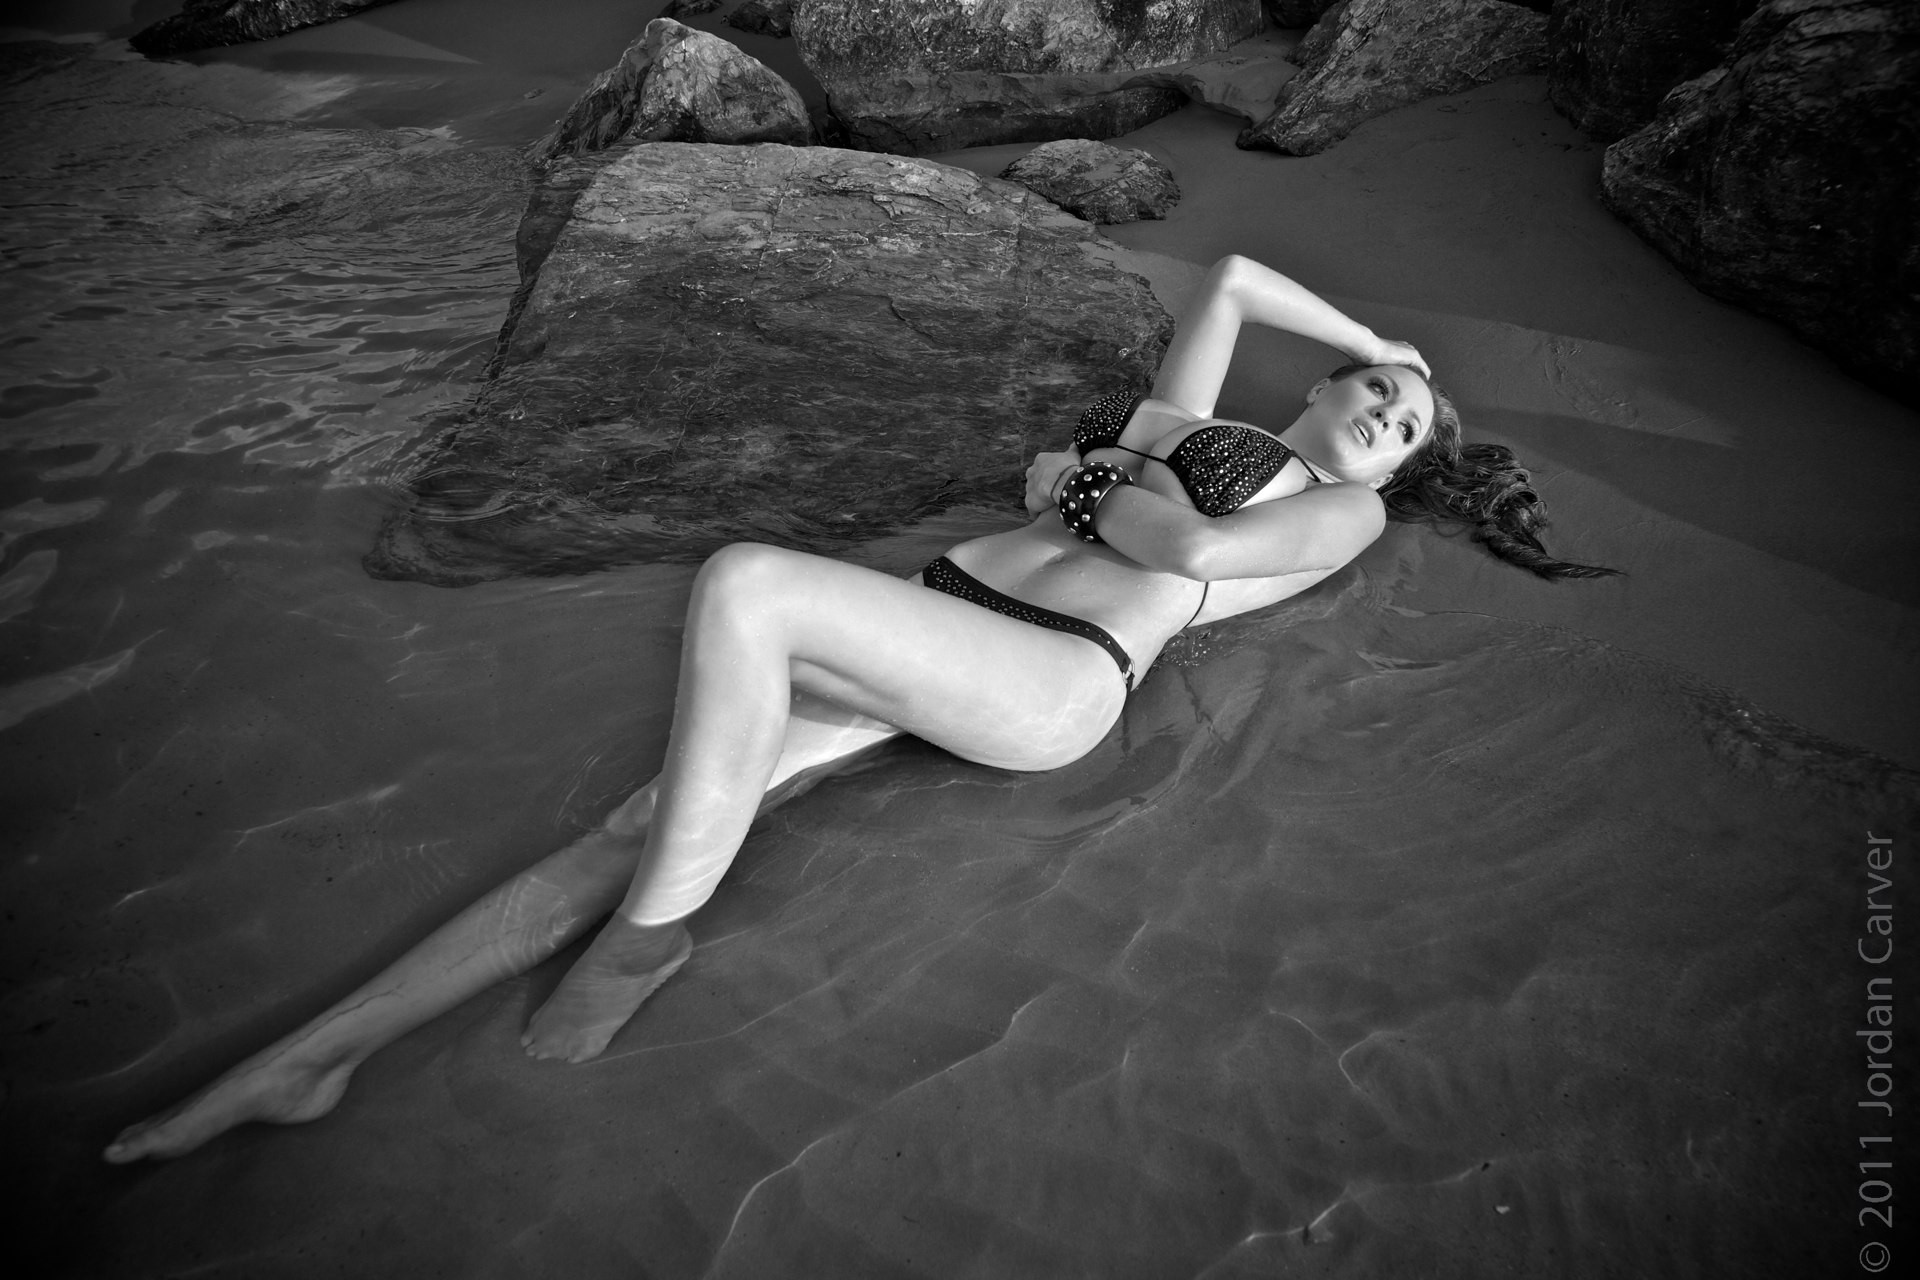 woman monochrome models lying down bikini